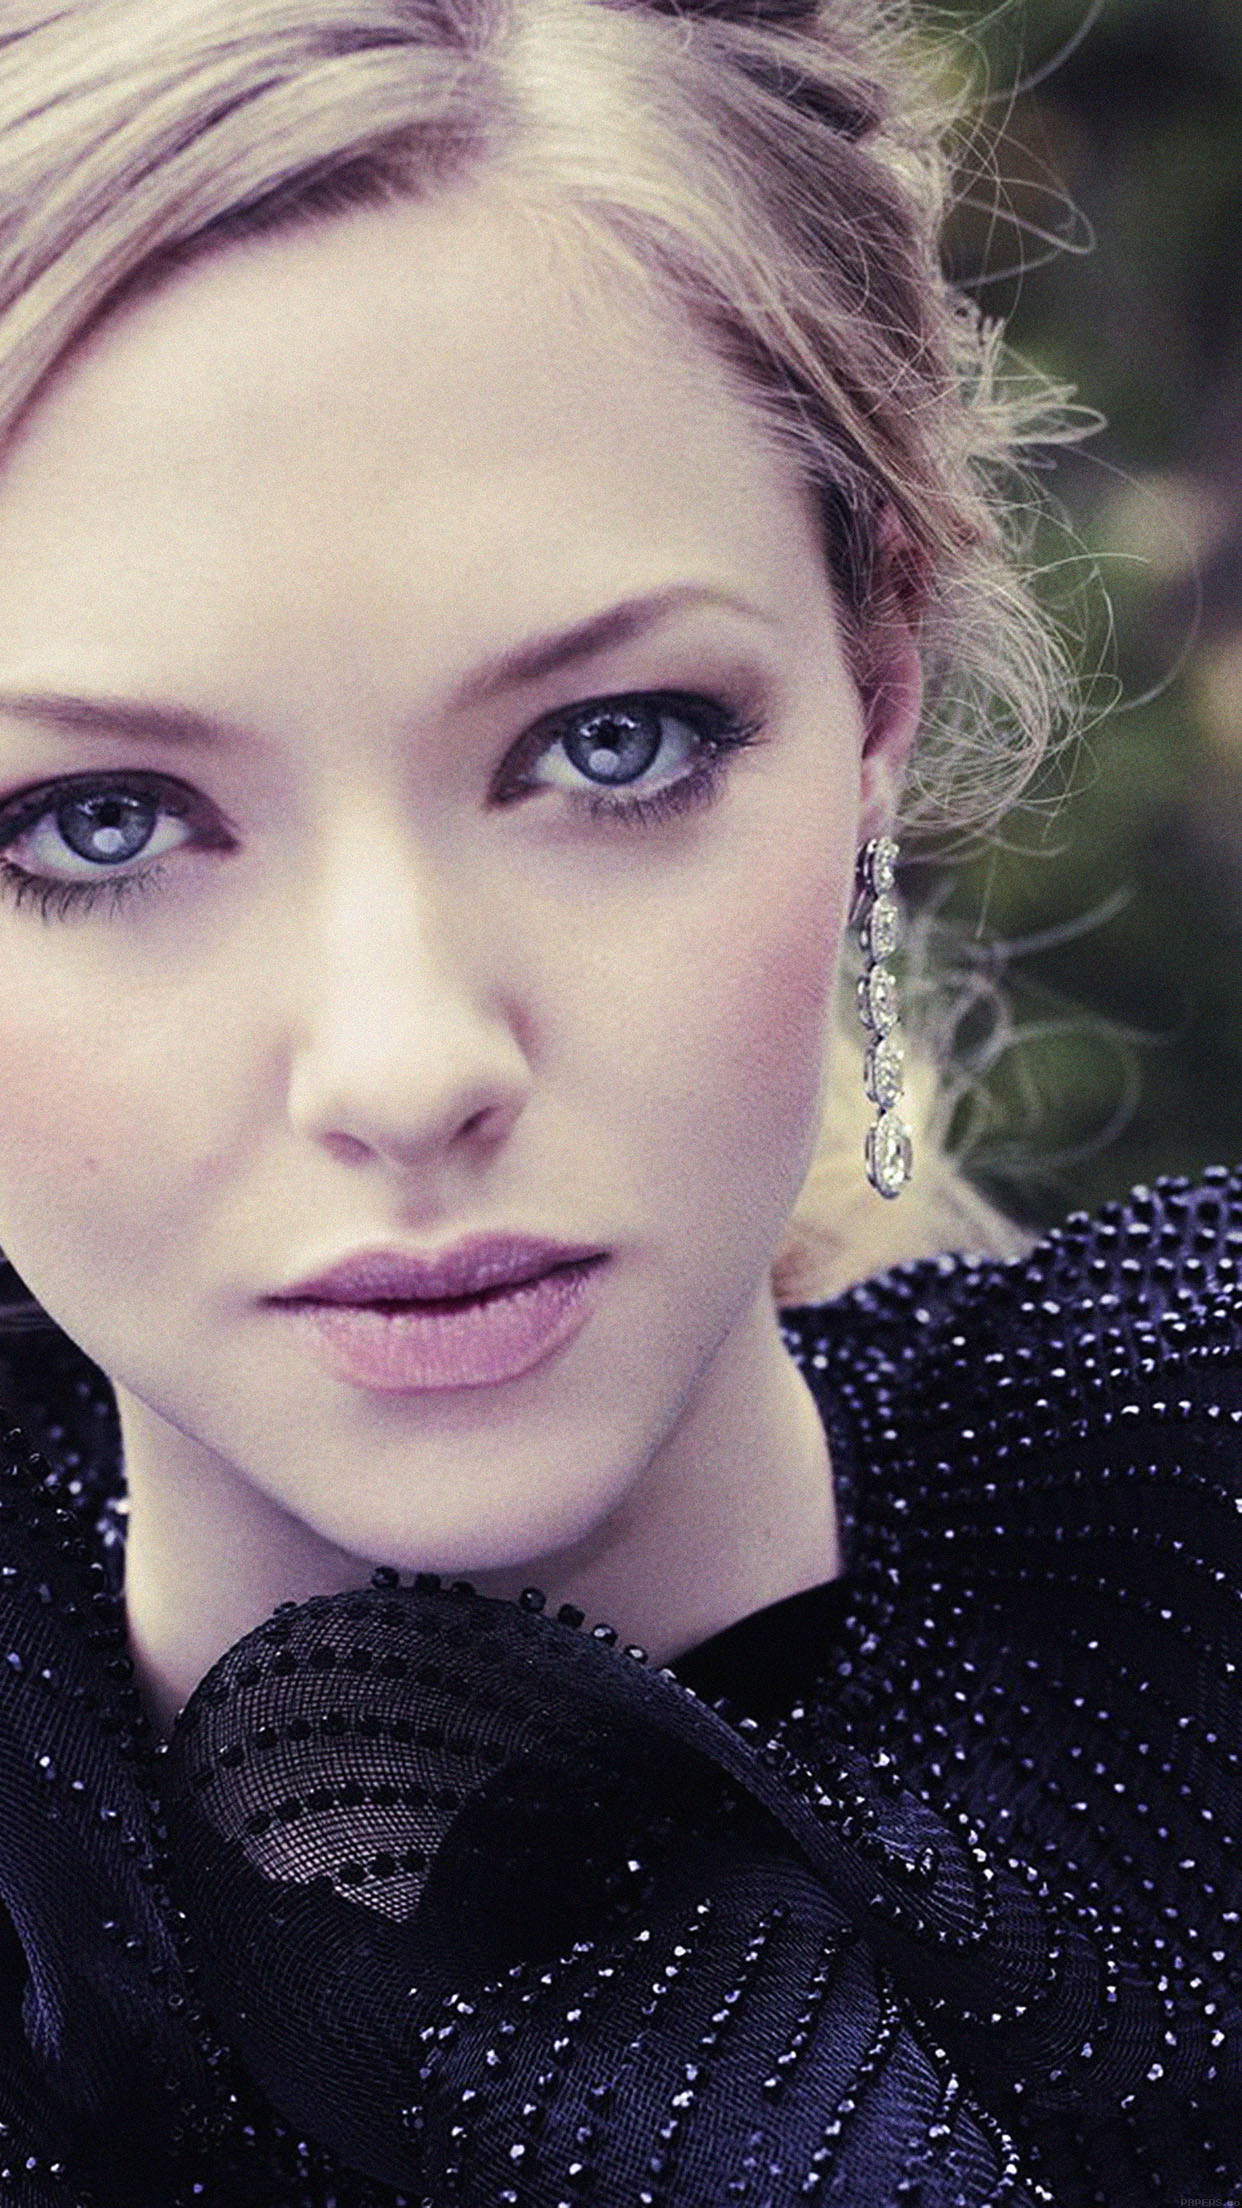 Car Wallpaper Hd  Hb43 Wallpaper Amanda Seyfried Film Actress Girl Wallpaper